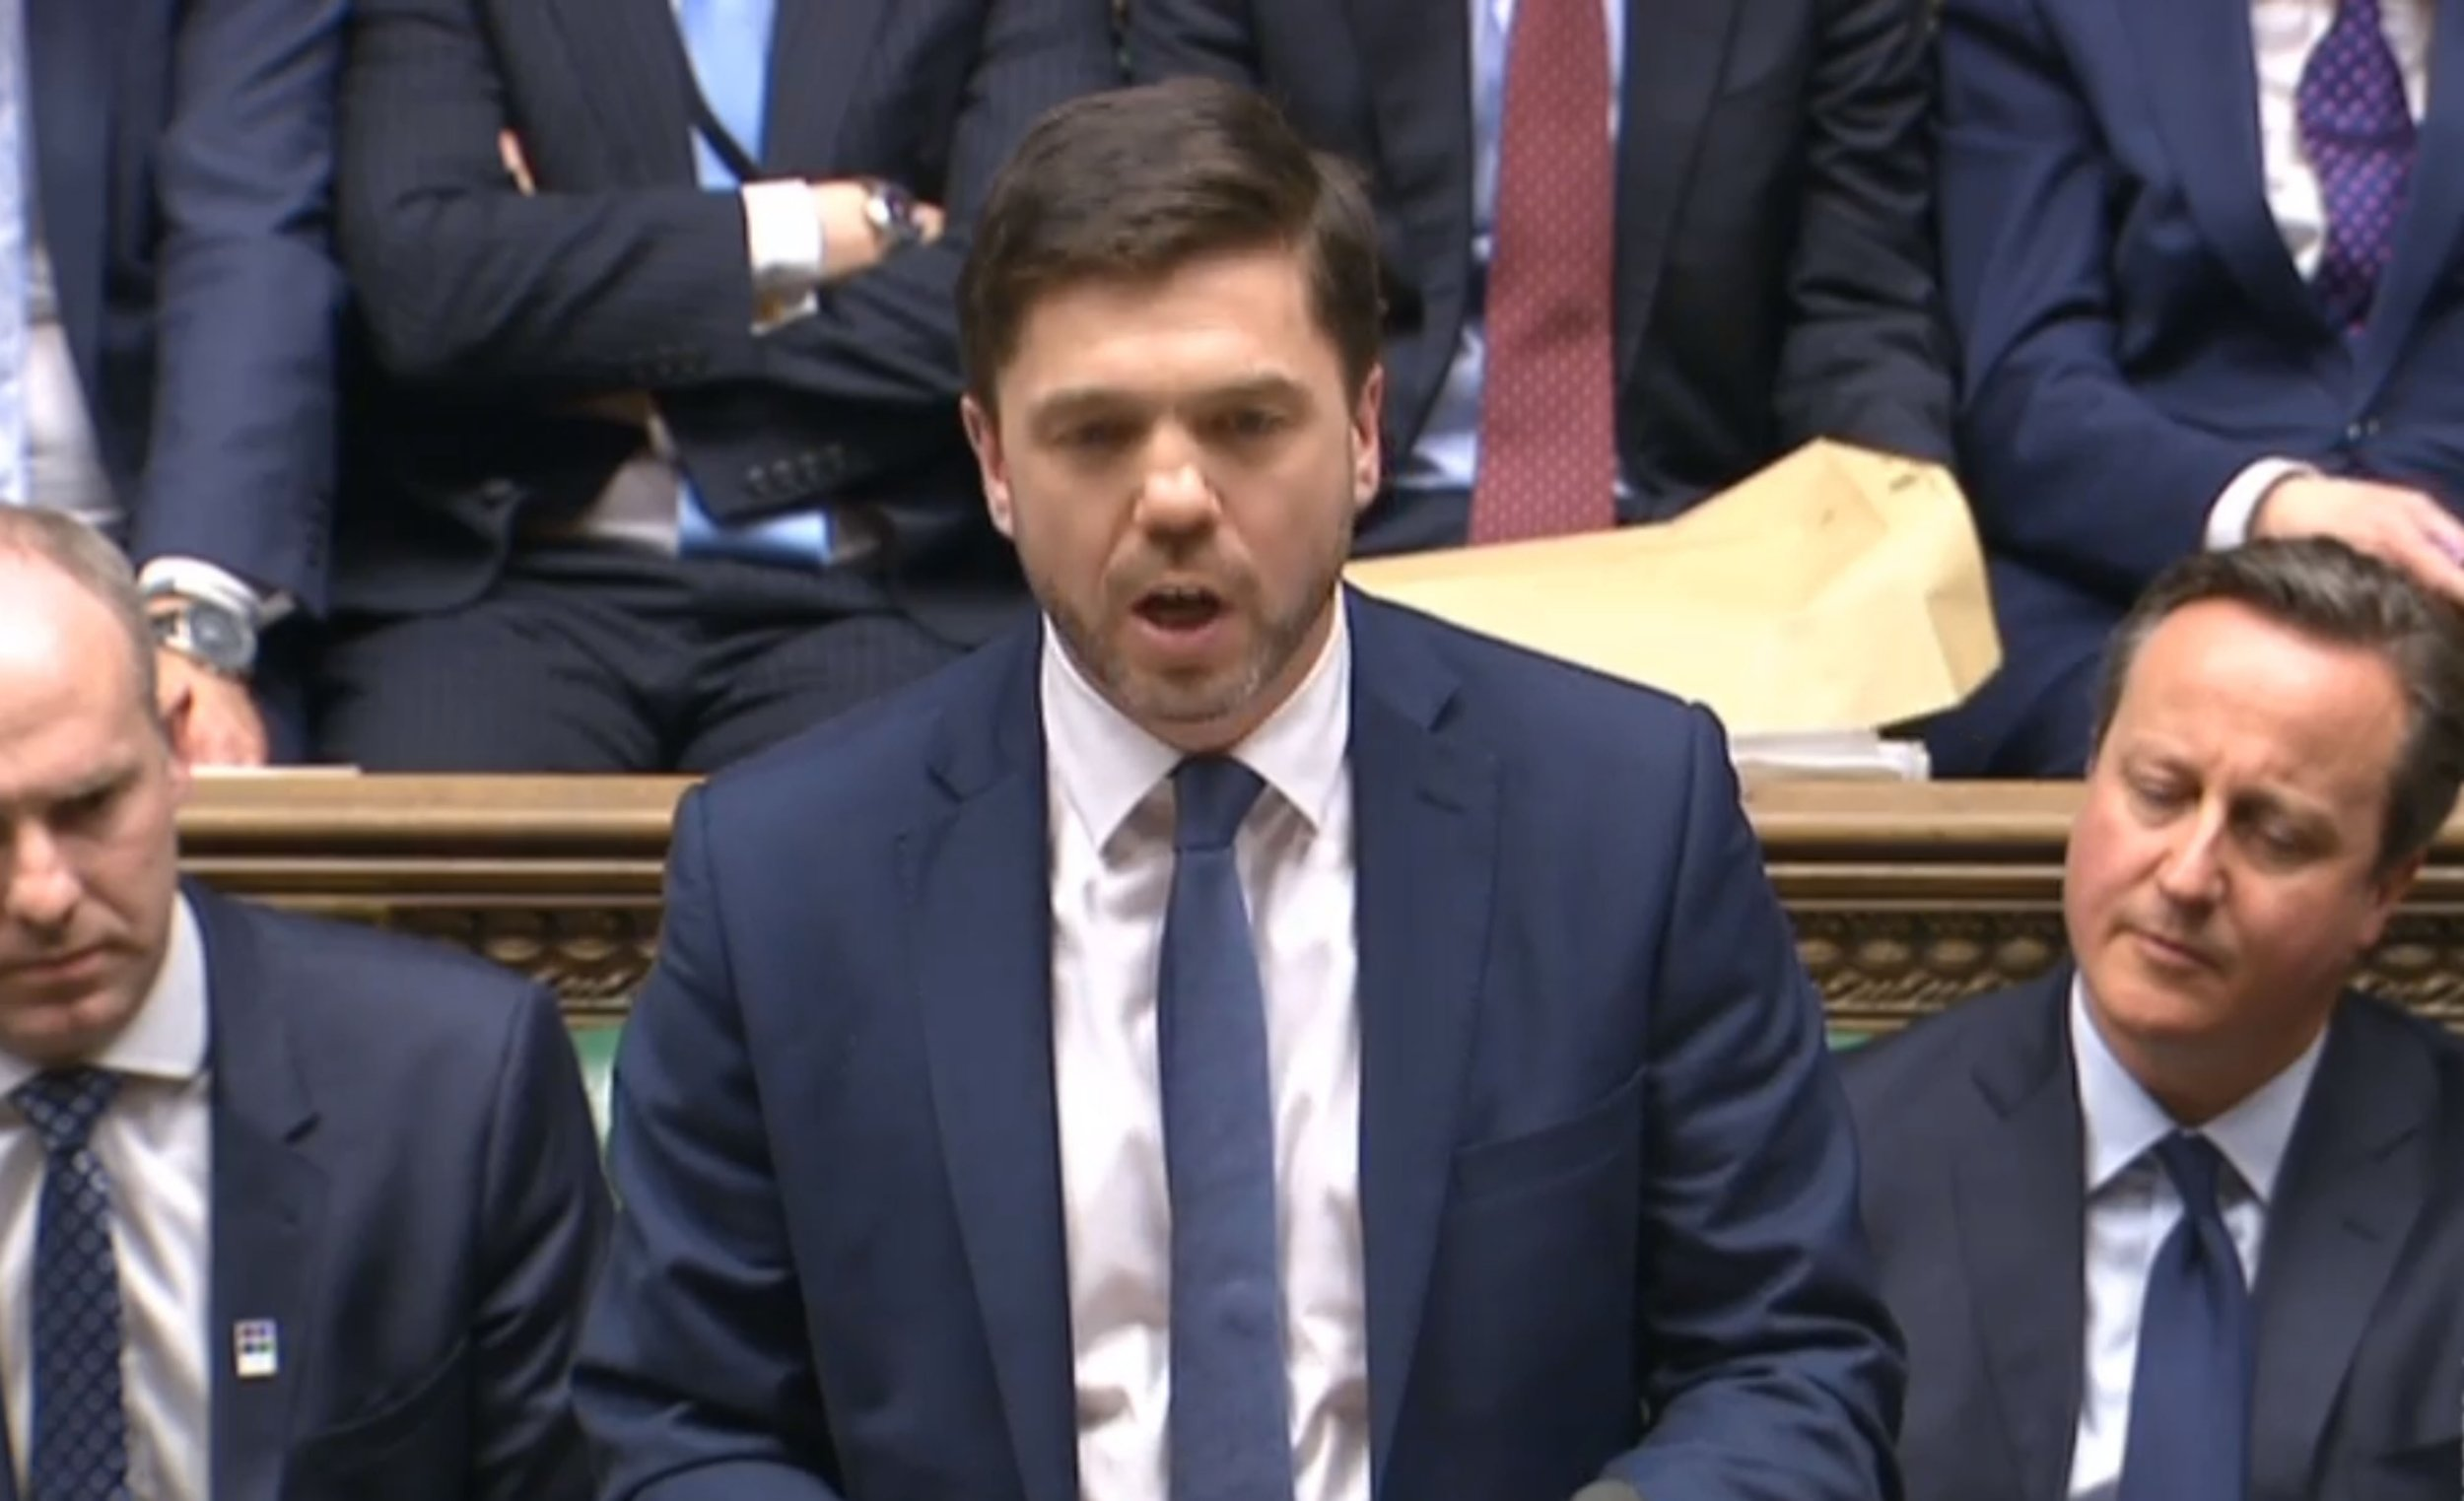 The new Secretary of State for Work and Pensions Stephen Crabb speaking in the House of Commons in London. PRESS ASSOCIATION Photo. Picture date: Monday March 21, 2016. See PA story POLITICS Disabled. Photo credit should read: PA Wire